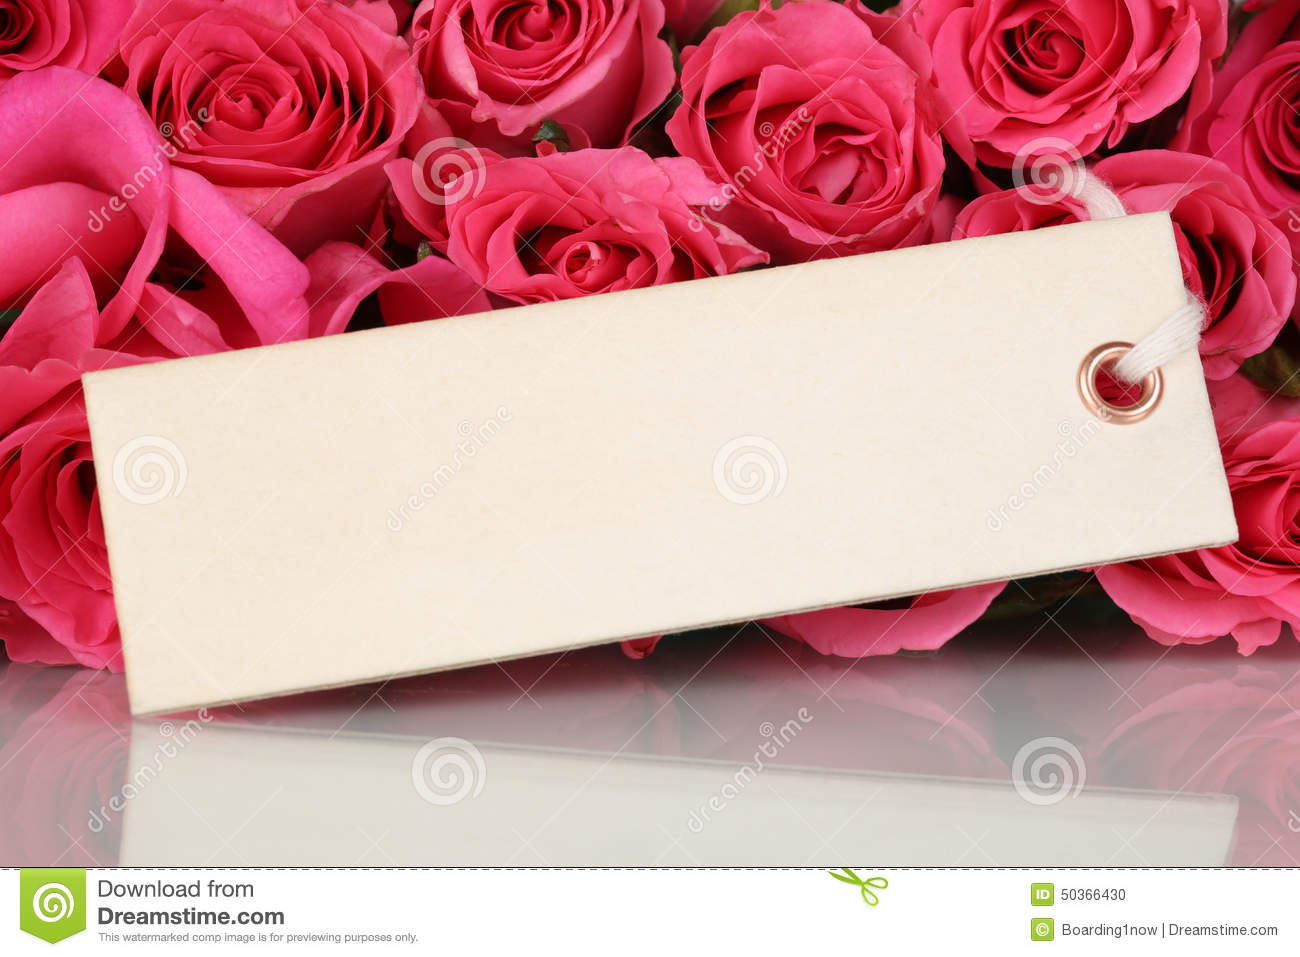 Roses Flowers On Valentines Or Mothers Day With Greeting Card – Flower Valentine Card